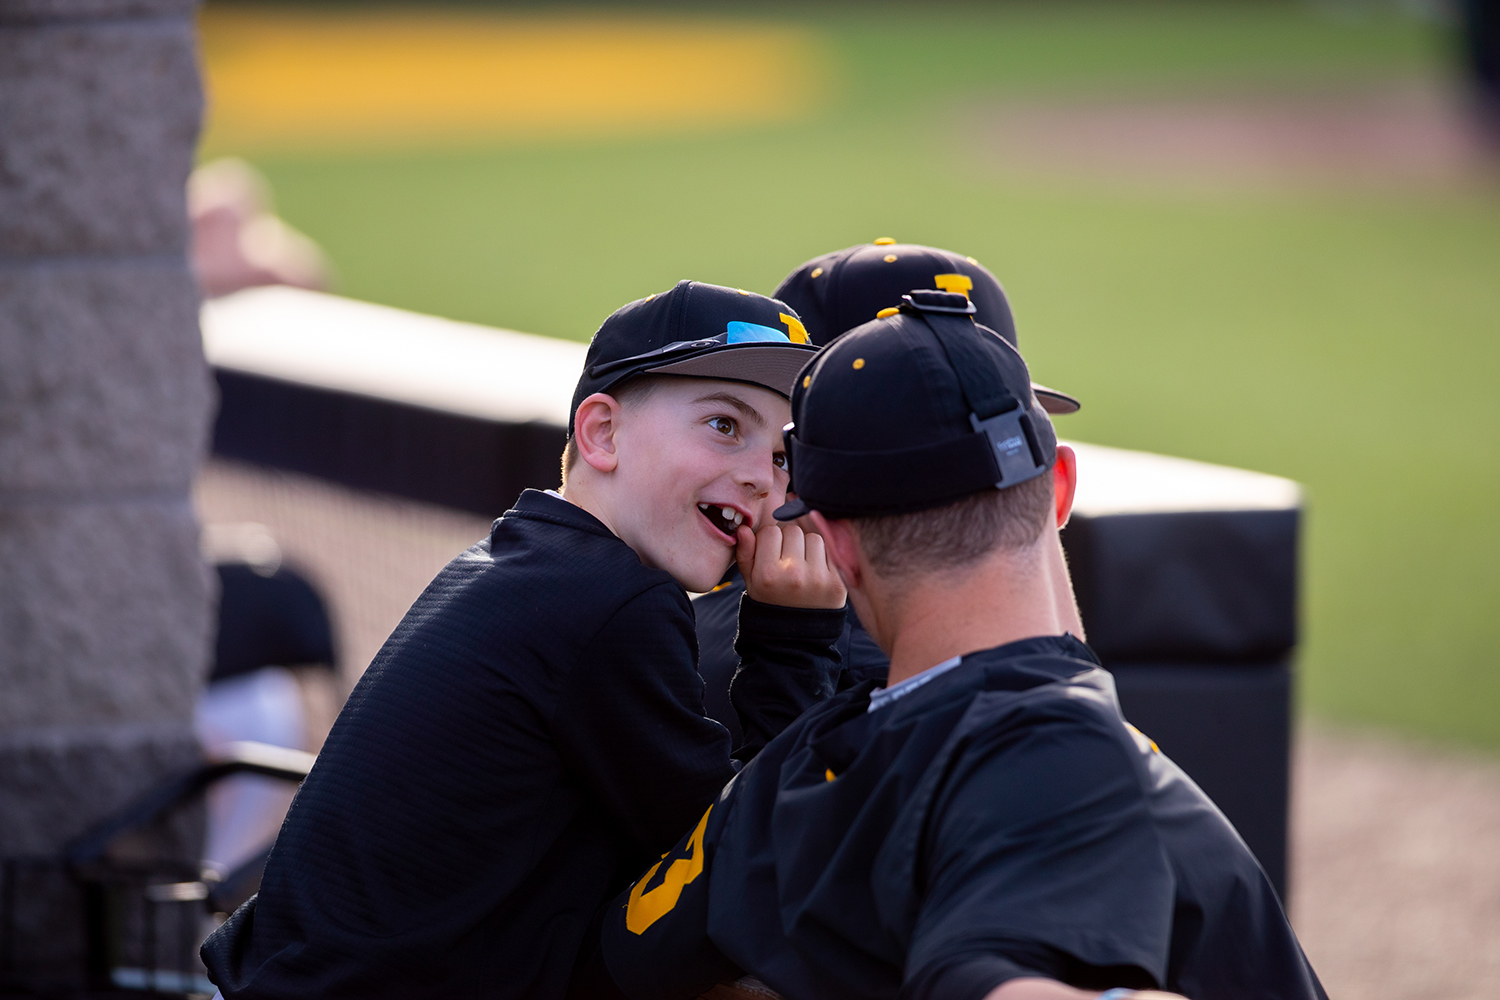 A+child+in+the+Iowa+dugout+jokes+around+with+the+team+during+the+baseball+game+against+Milwaukee+at+Duane+Banks+Field+on+Tuesday%2C+April+23%2C+2019.+The+Hawkeyes+defeated+the+Panthers+5-4.